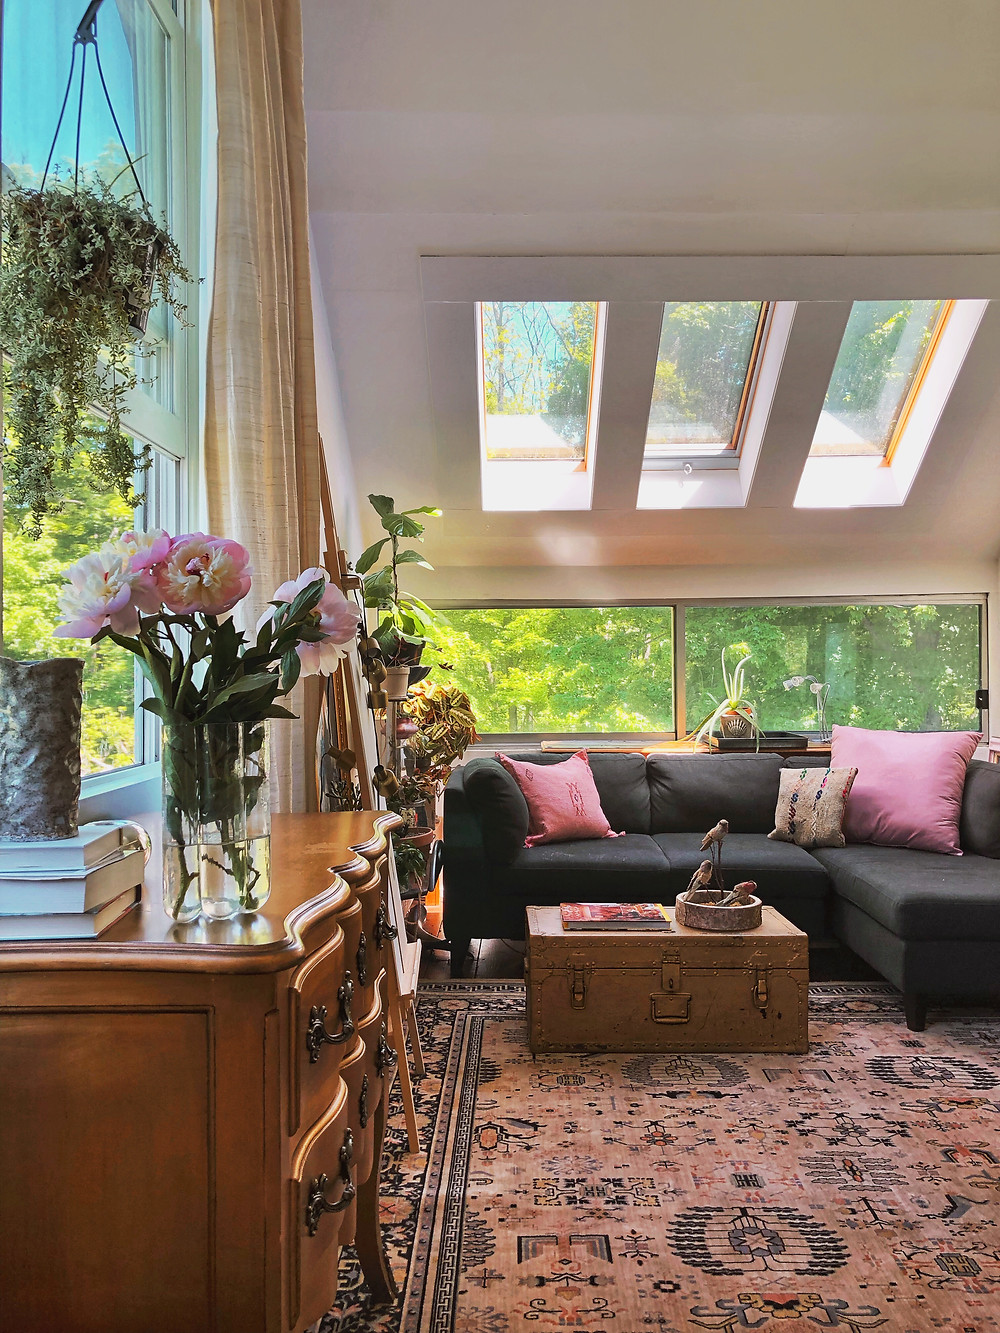 Green trees outside windows, pink rug, gold furniture